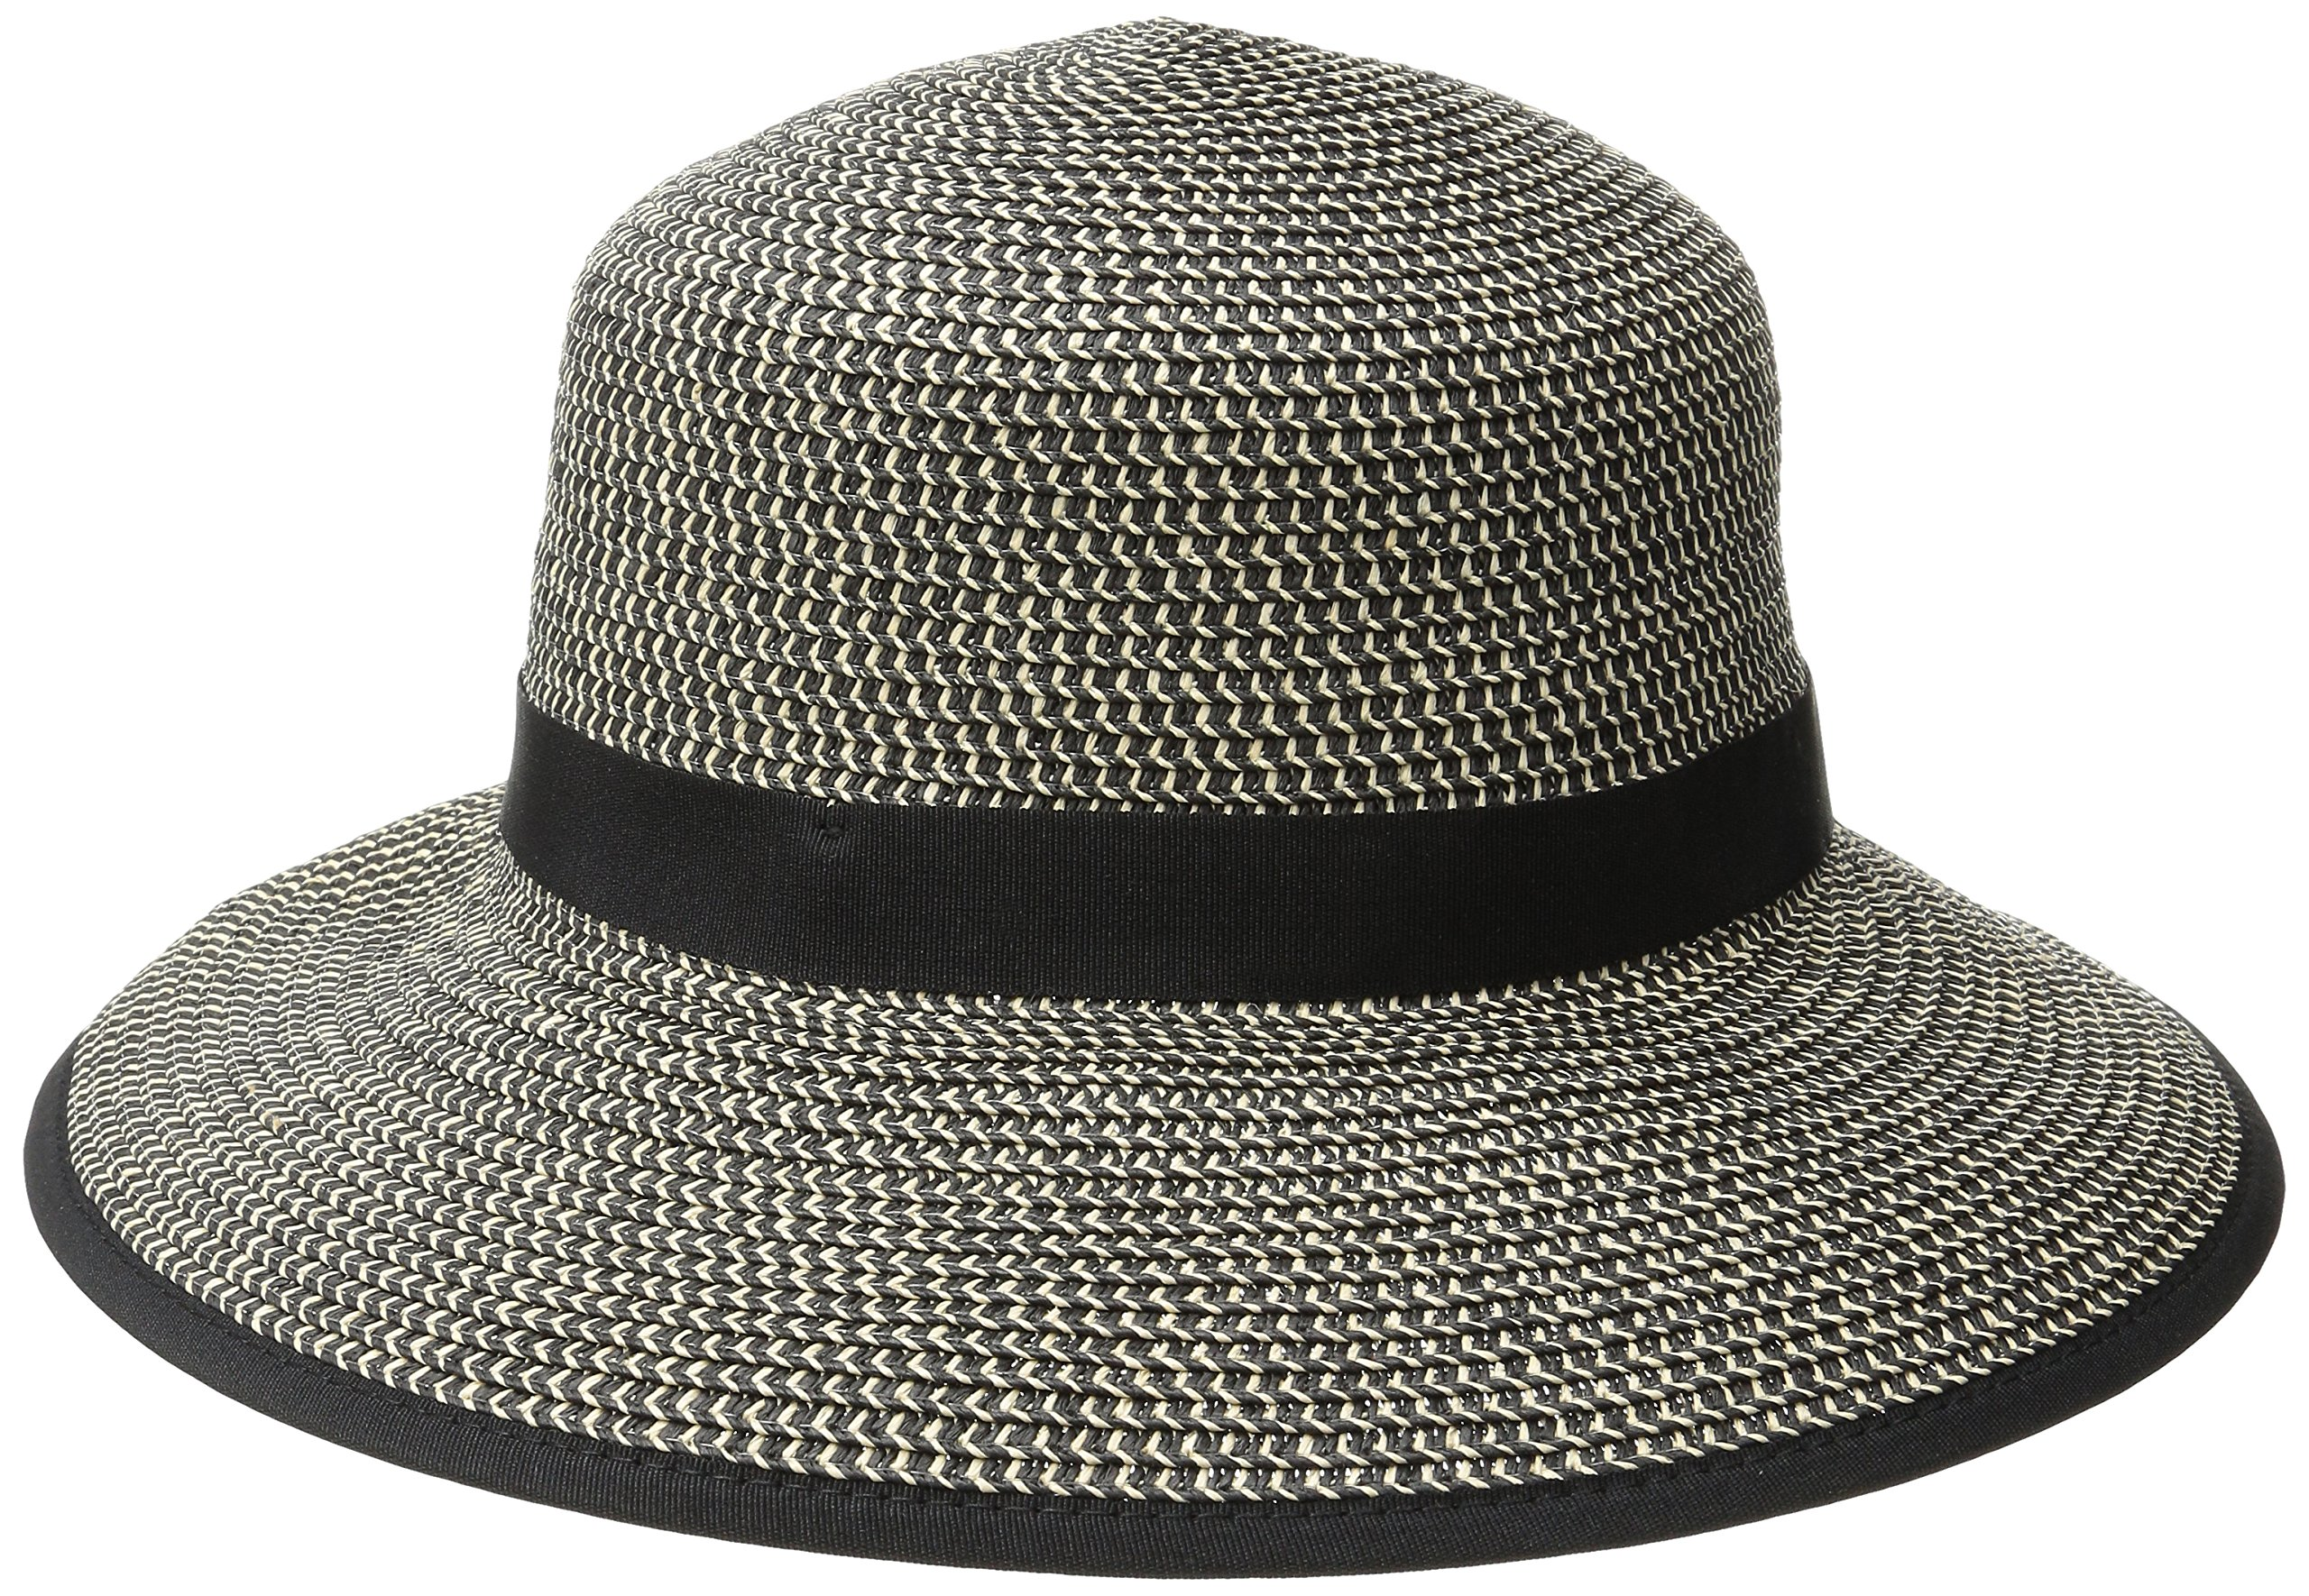 Physician Endorsed Women's Pitch Perfect Straw Sun Hat, Rated UPF 50+ for Max Sun Protection, Black Tweed, One Size